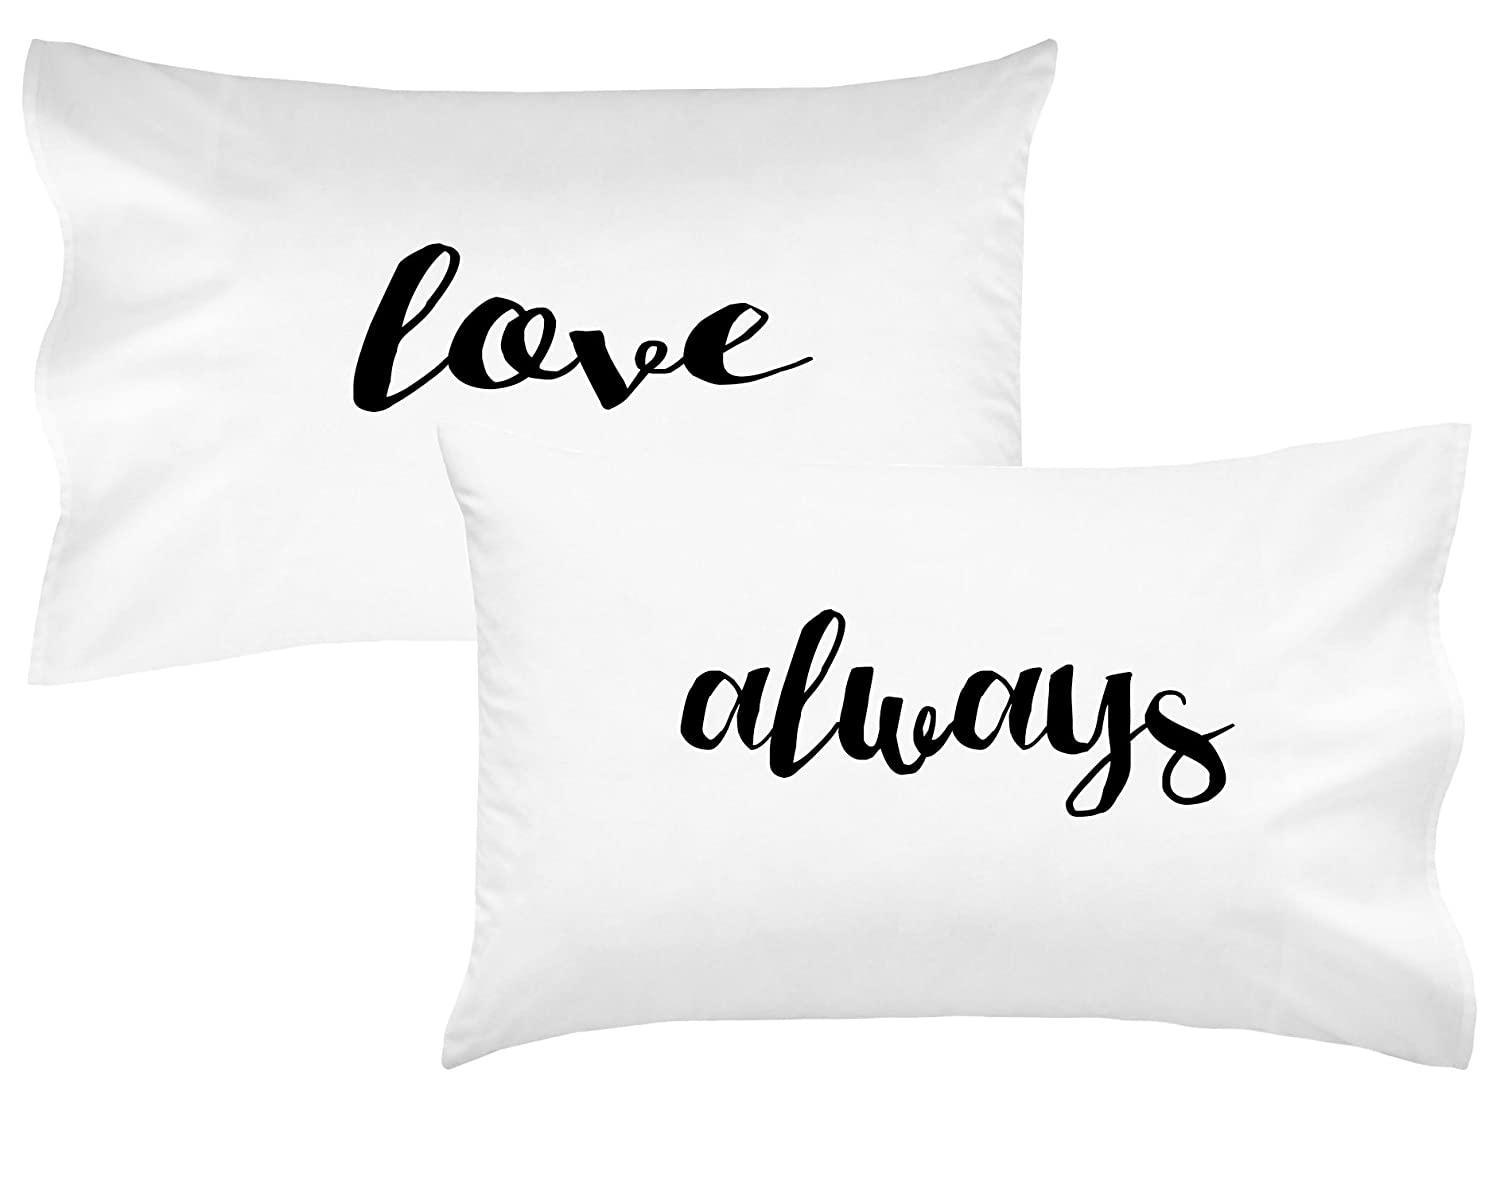 Oh, Susannah Love Always Couples Pillowcases Romantic Valentines Gift For Couples Wedding Gift Anniversary Gift For Her or Him His and Hers Gifts Mother's Day Gift